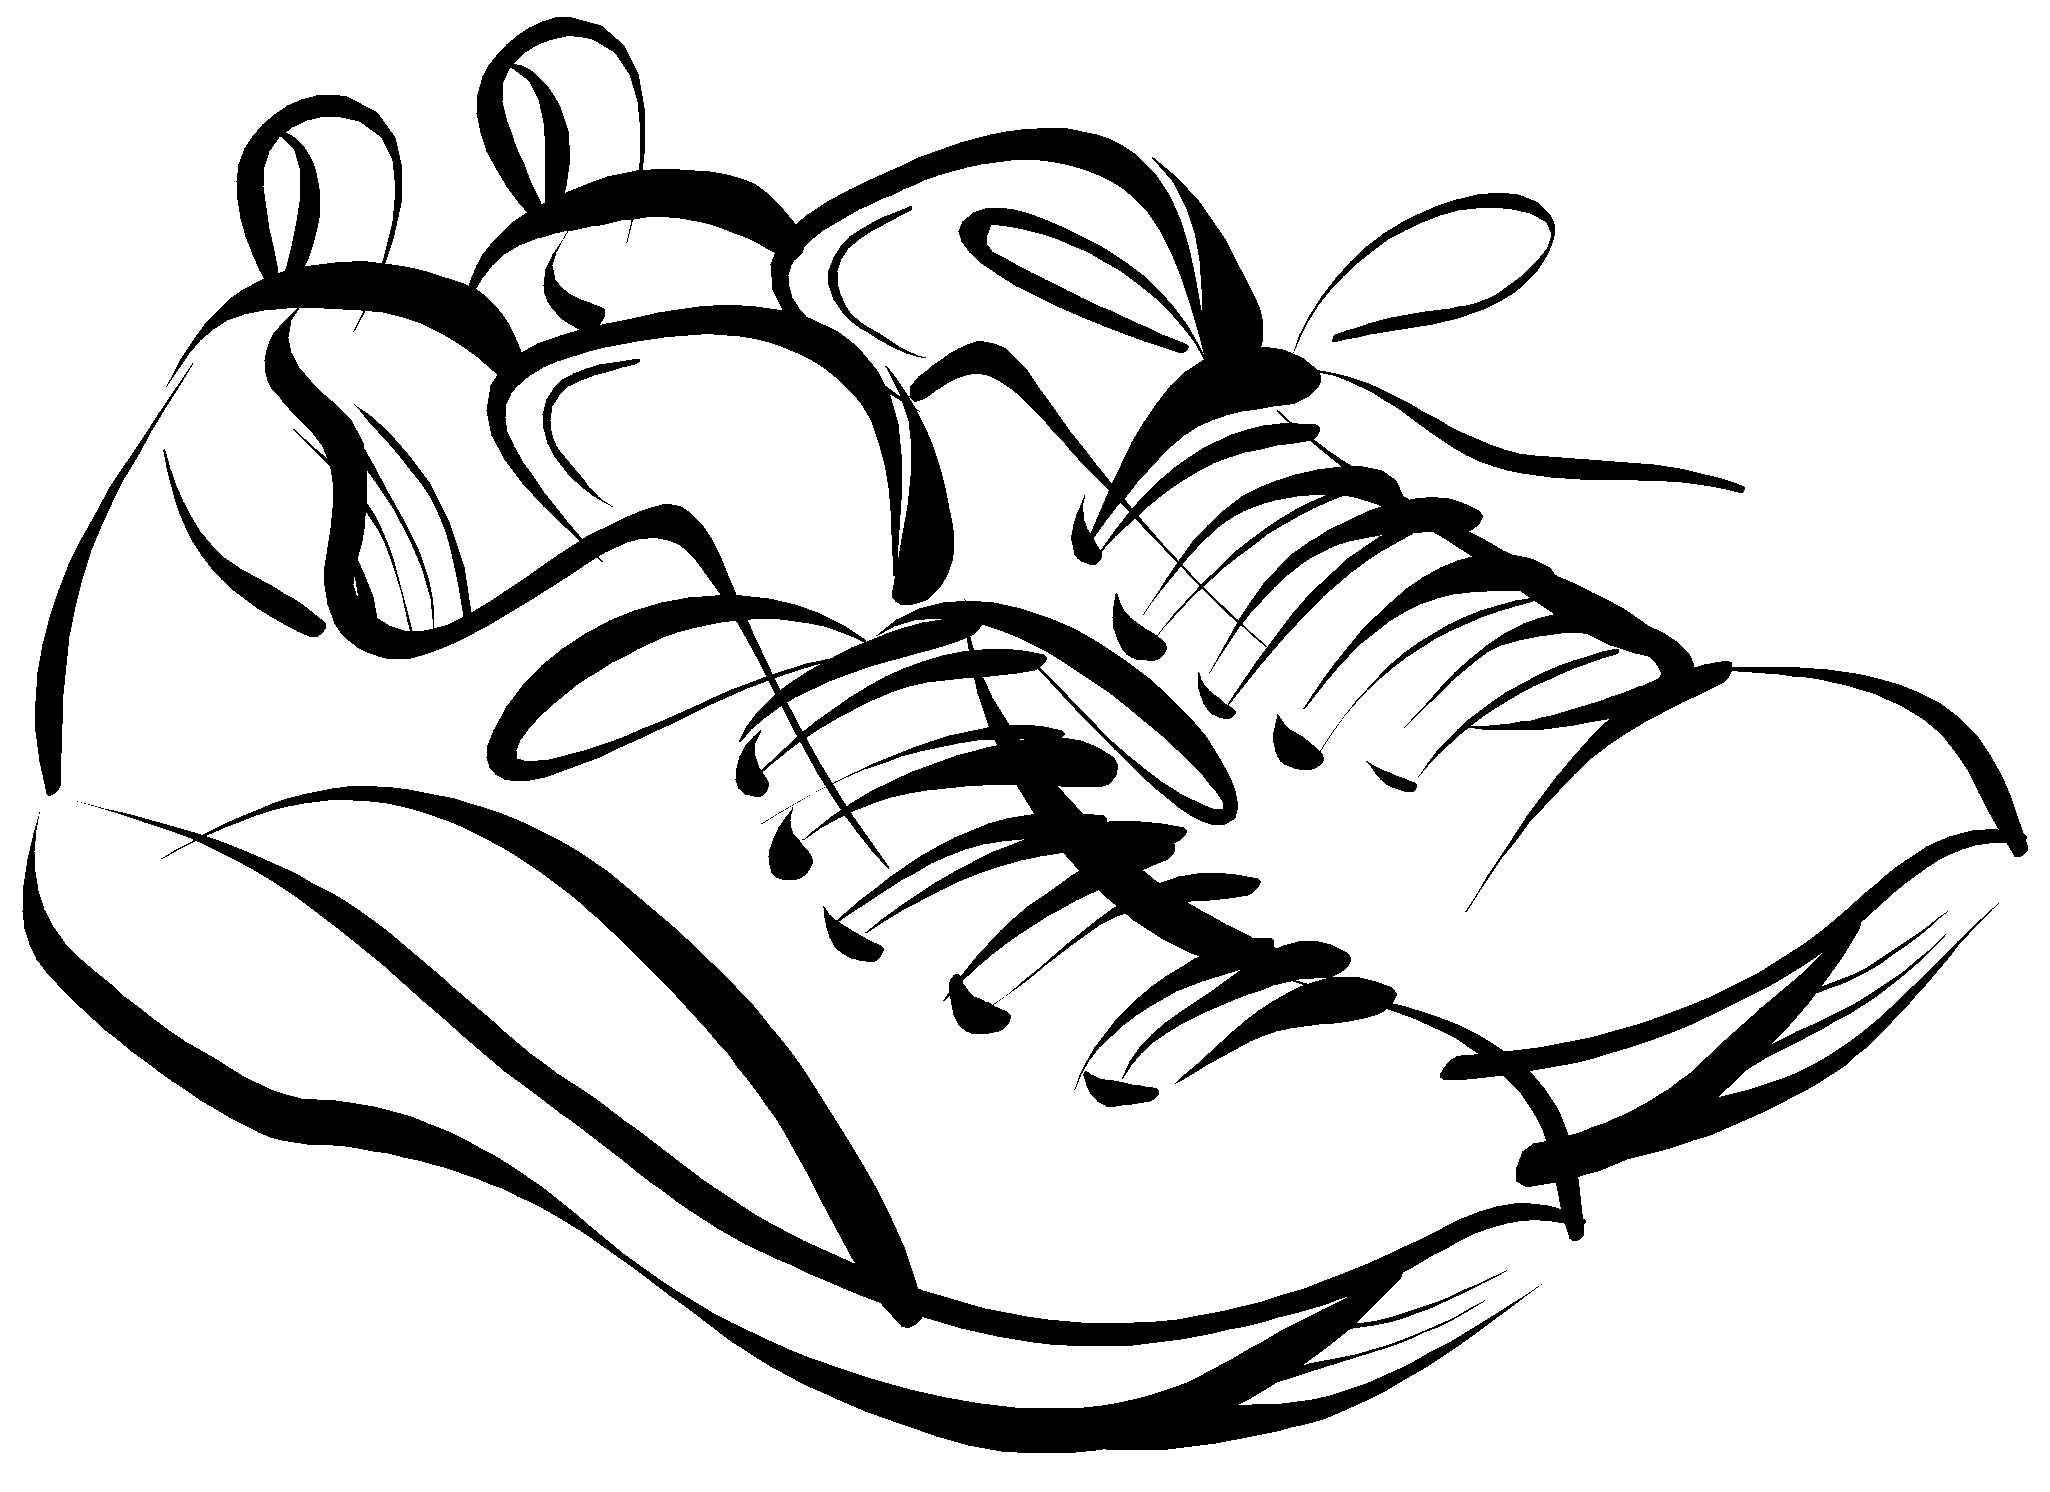 graphic download Tennis shoe clipart.  collection of images